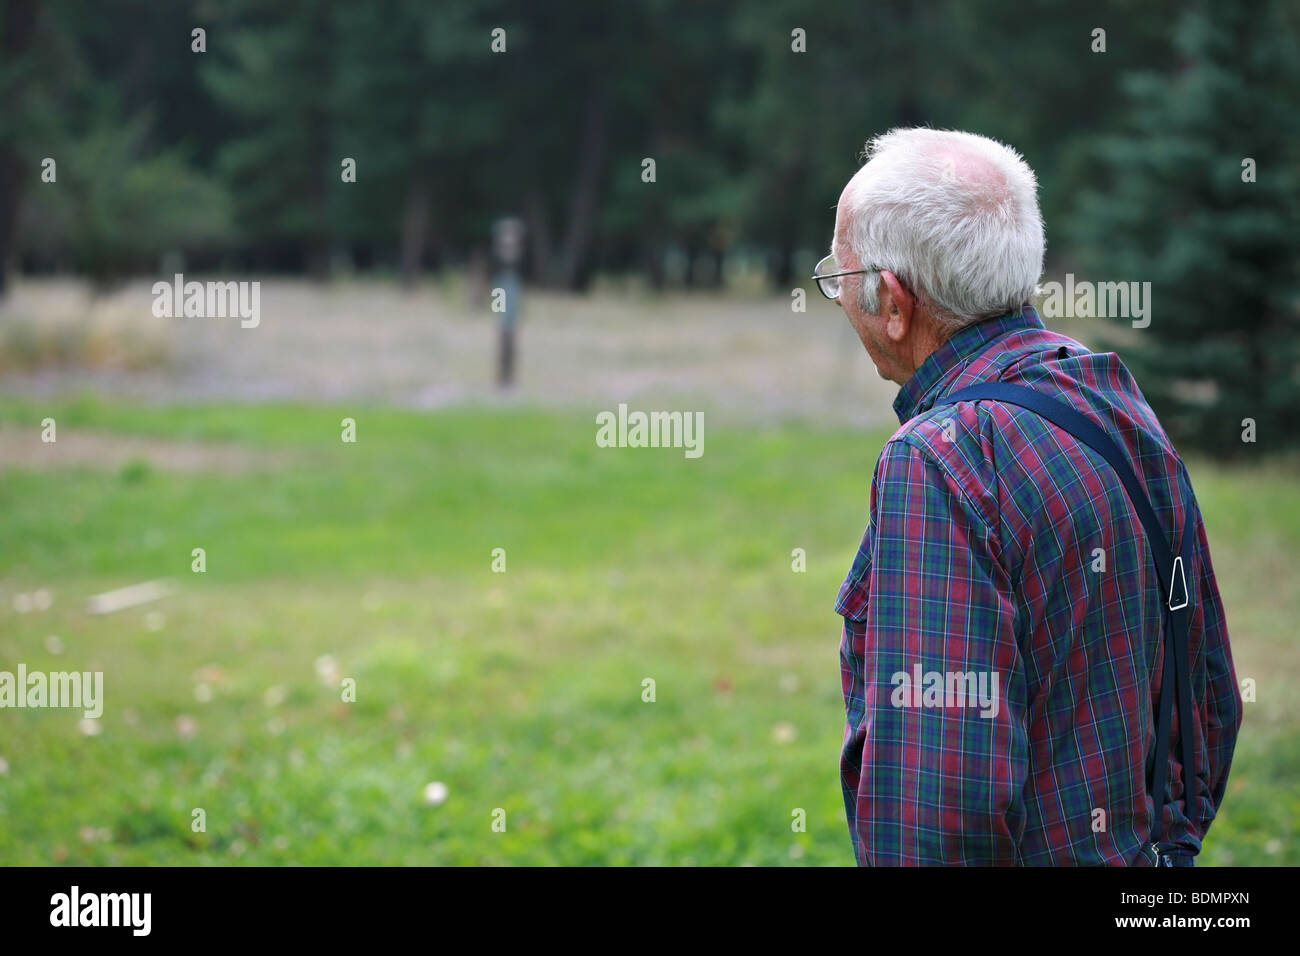 Elderly man looking off, plenty of room for copy space. - Stock Image